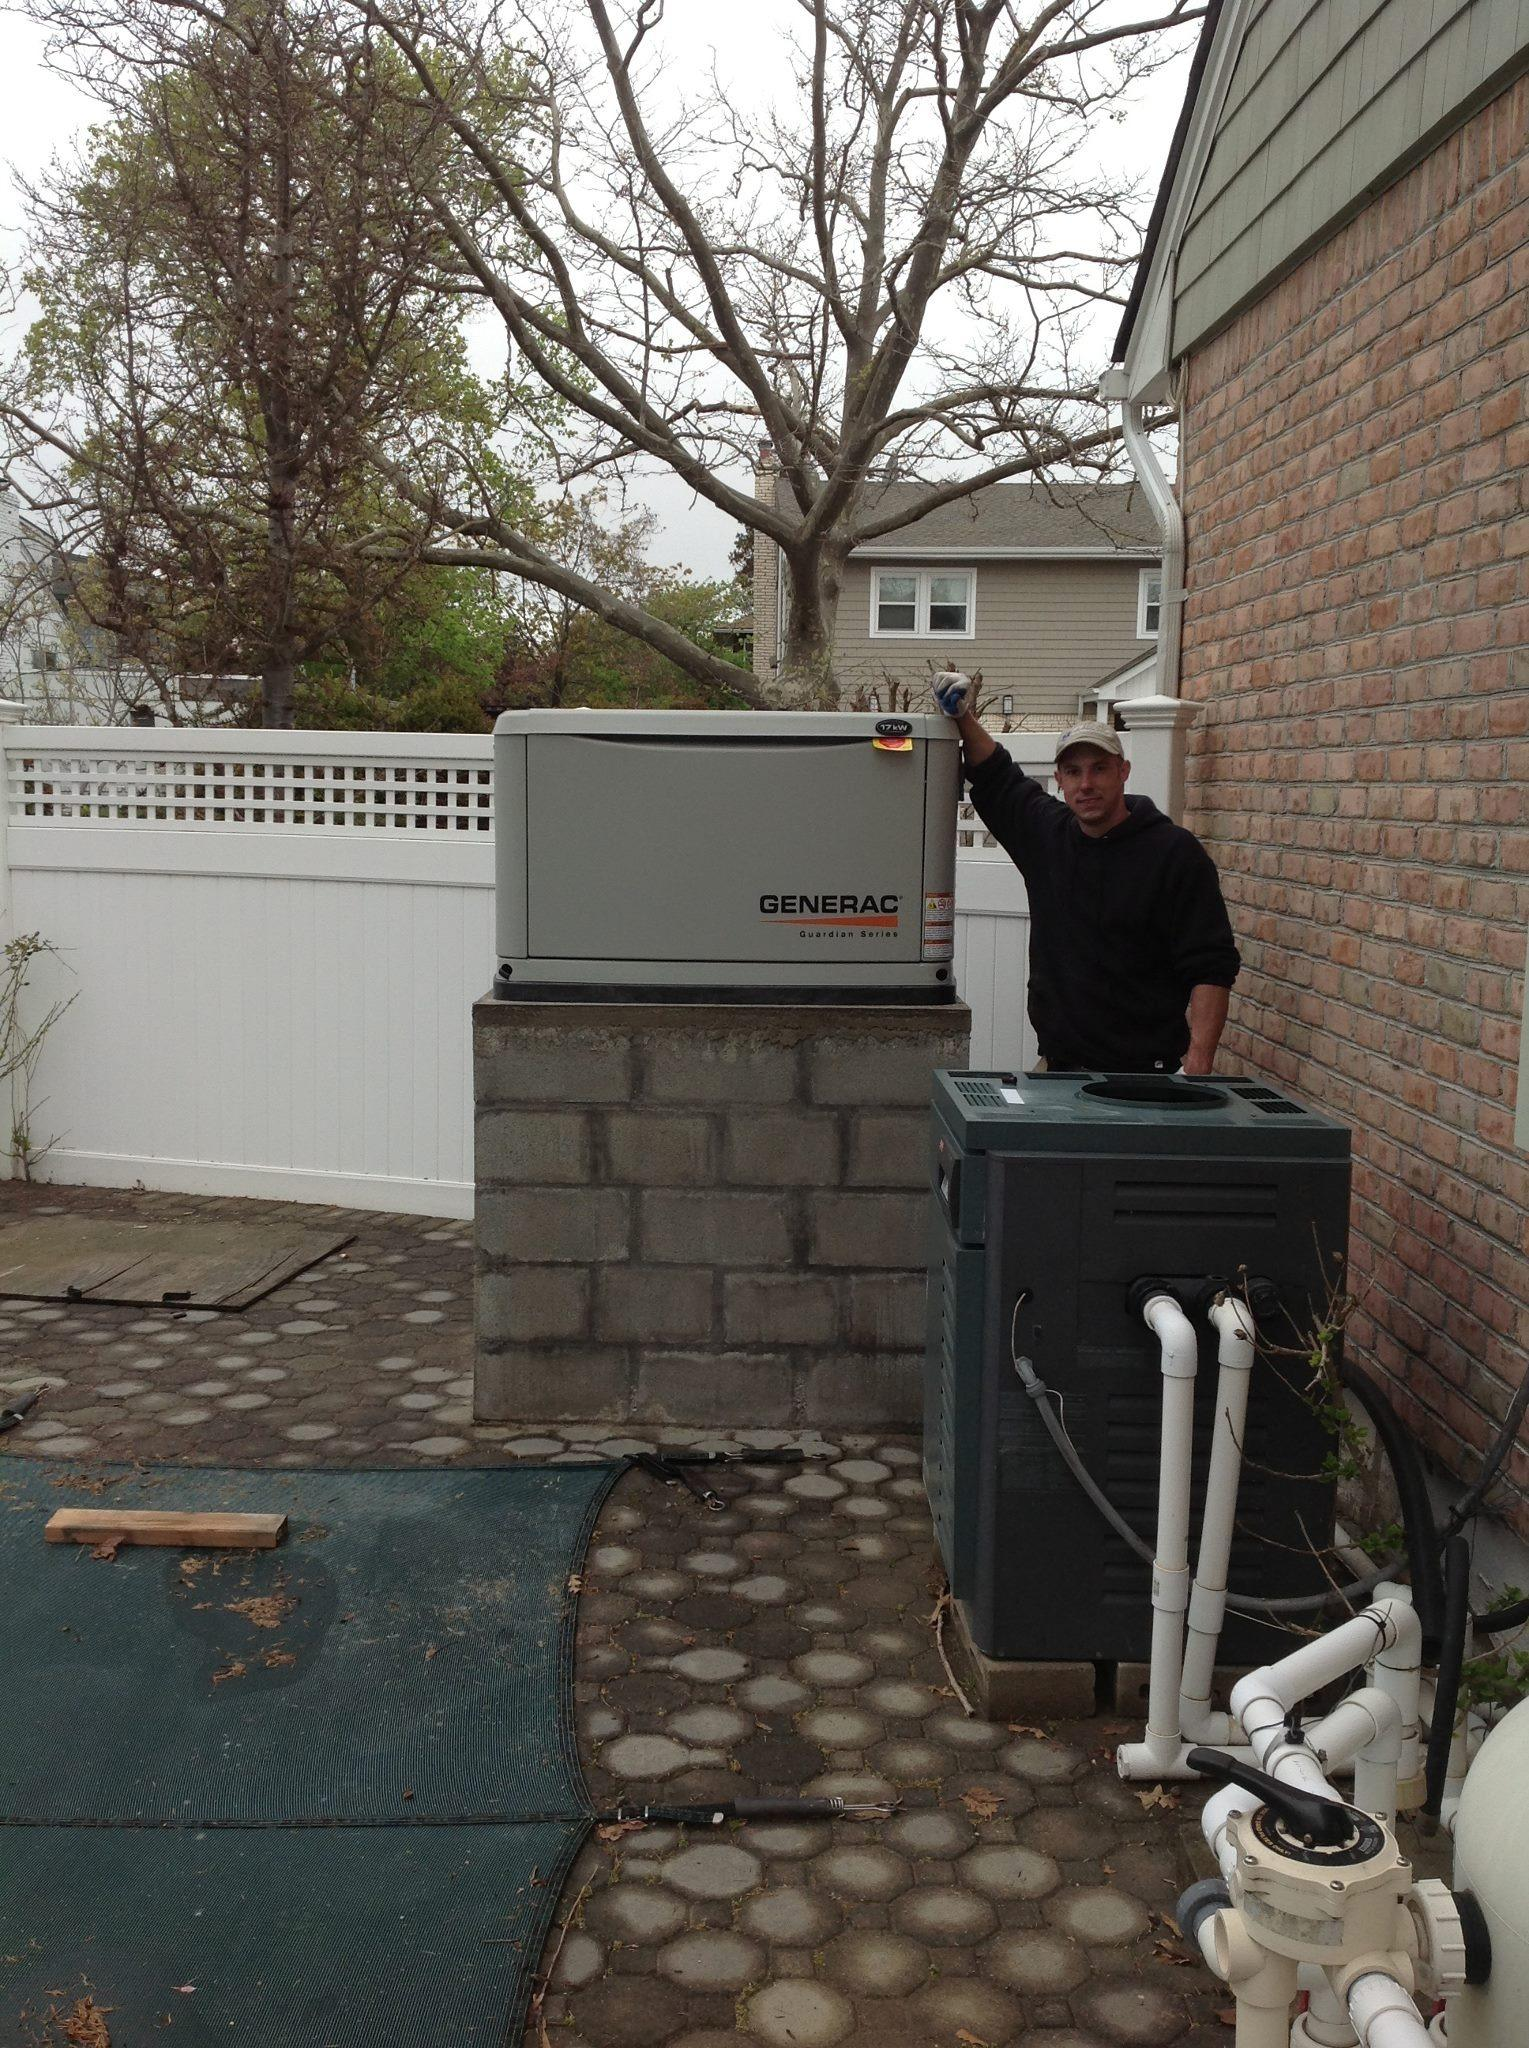 Pipe Doctor Plumbing, Heating & Air Conditioning, Inc. image 9